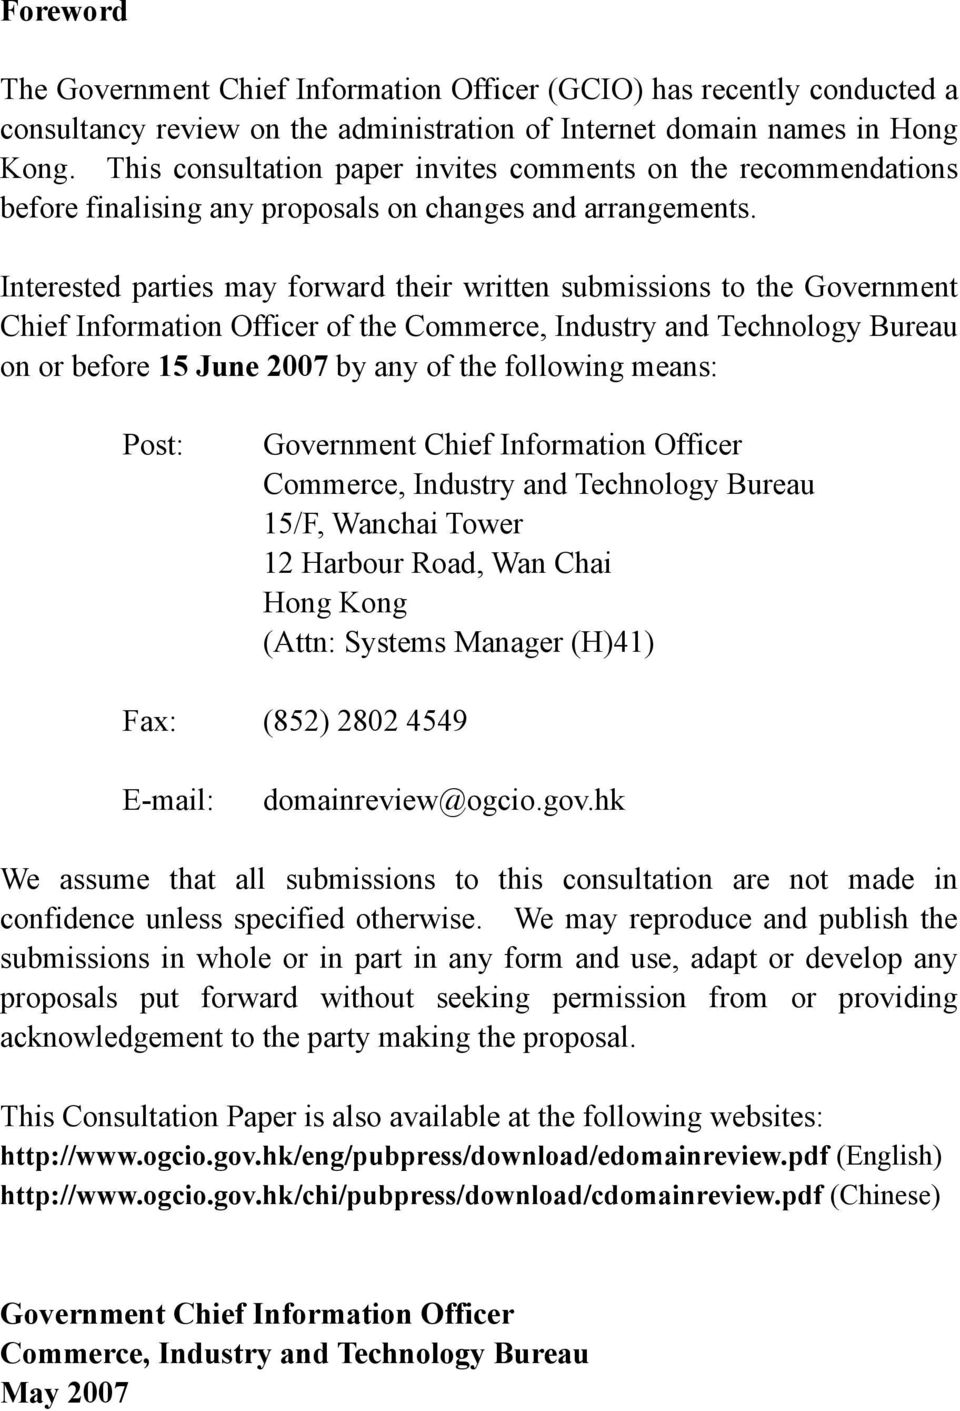 Interested parties may forward their written submissions to the Government Chief Information Officer of the Commerce, Industry and Technology Bureau on or before 15 June 2007 by any of the following